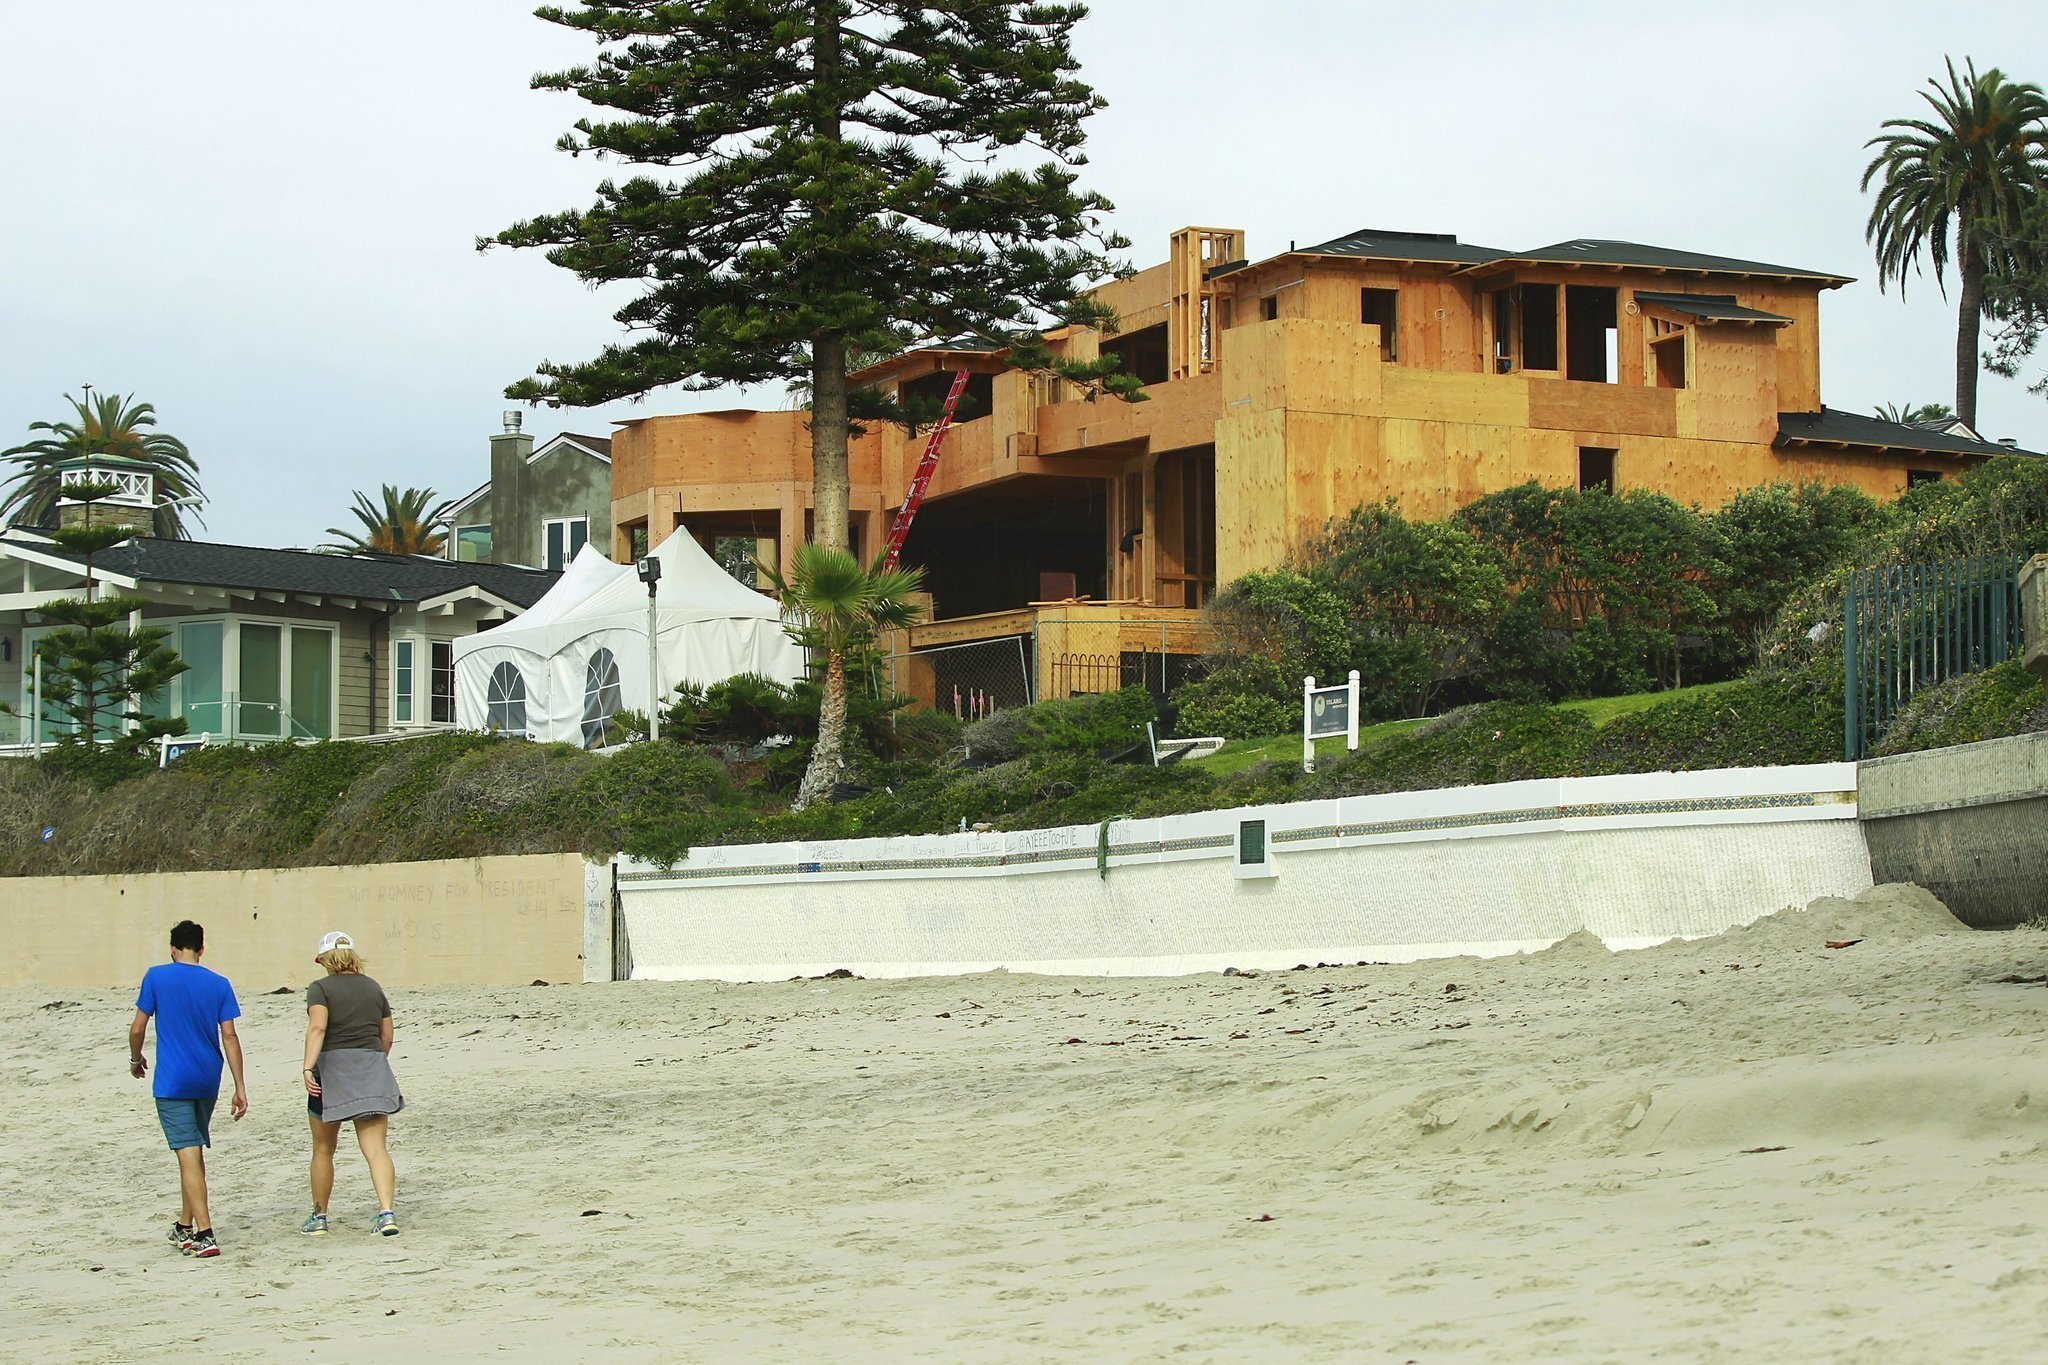 Romney may sell rebuilt La Jolla home